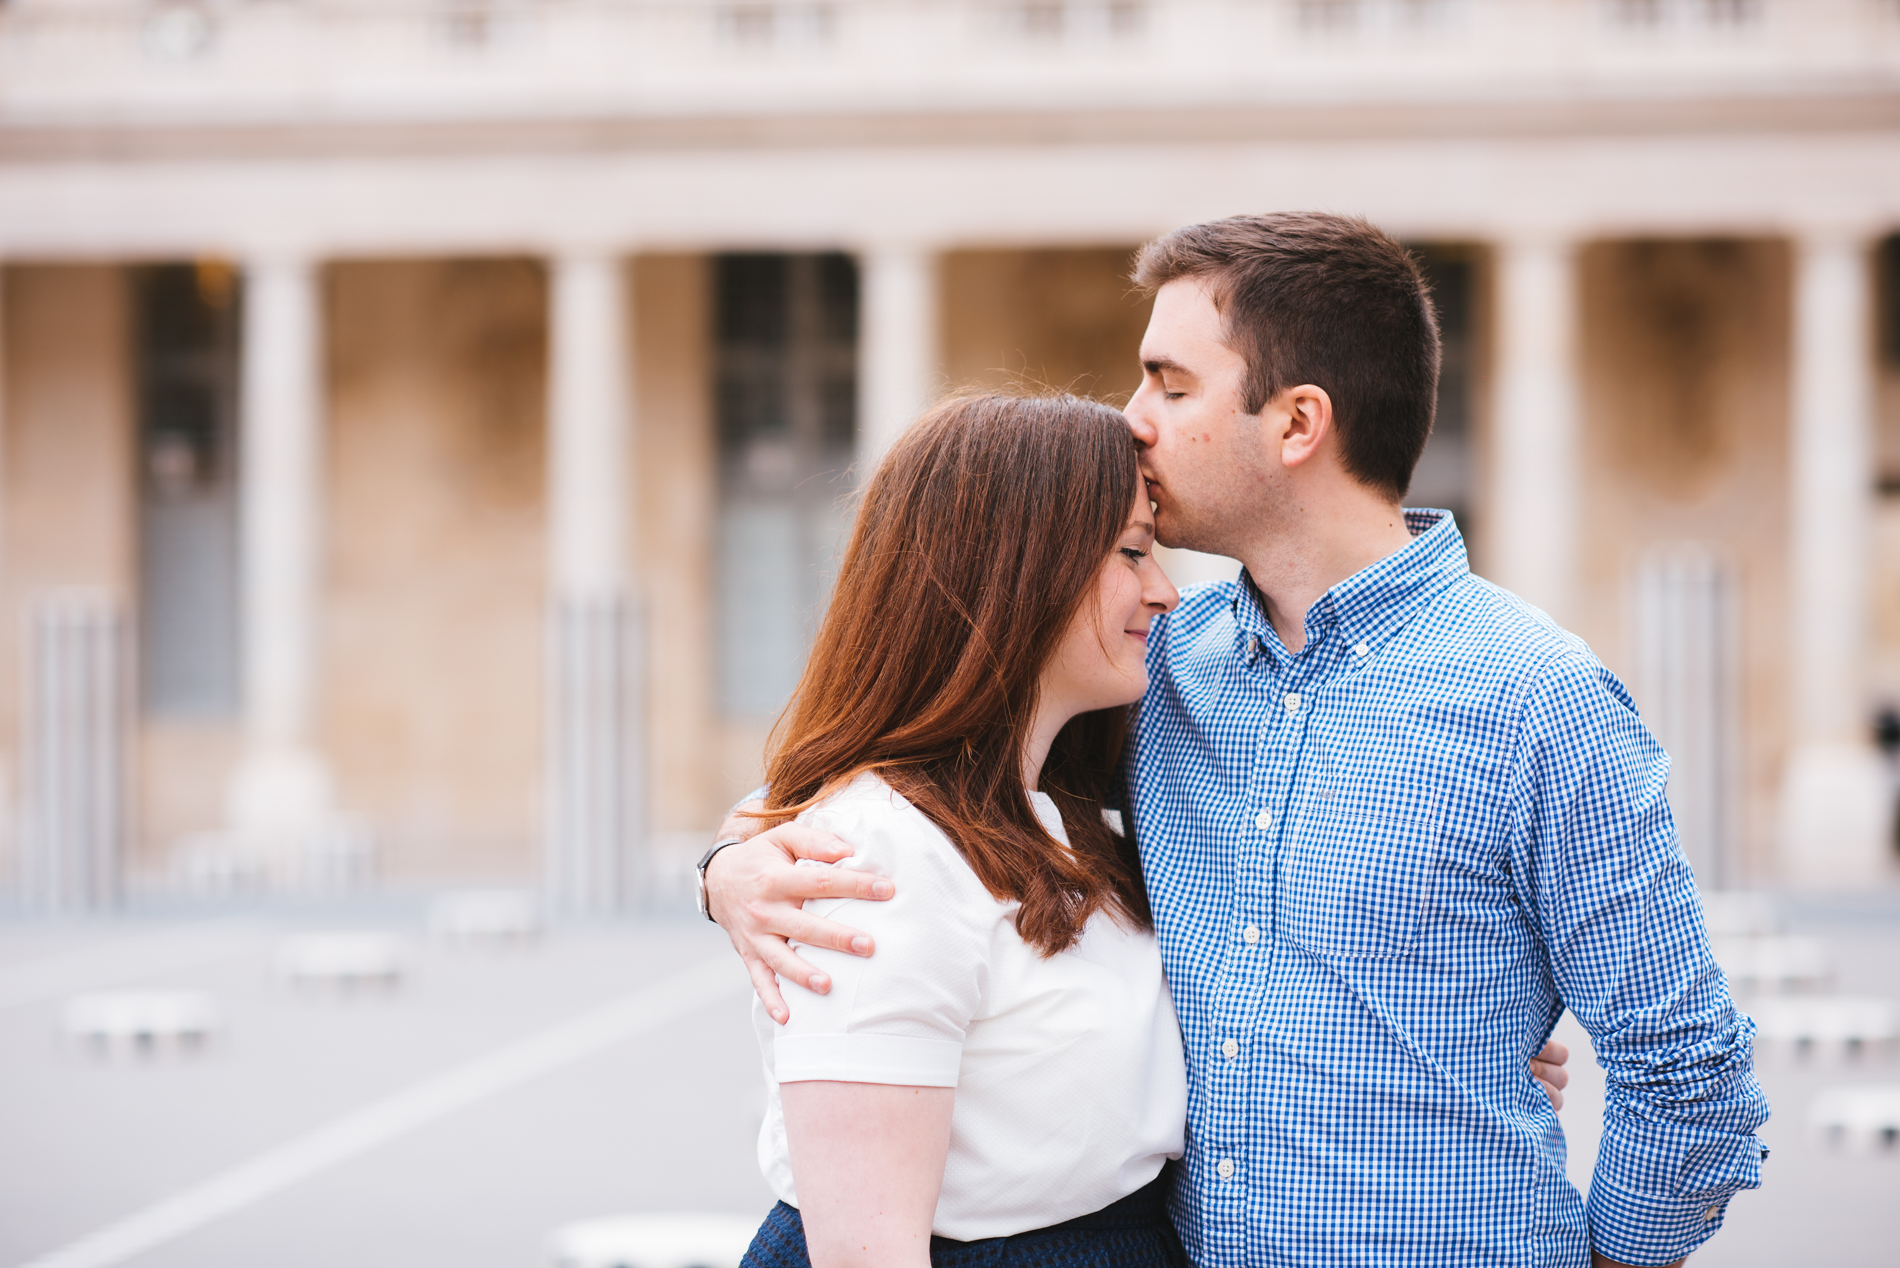 seance-engagement-paris-maldeme-photographe-palais royal-6